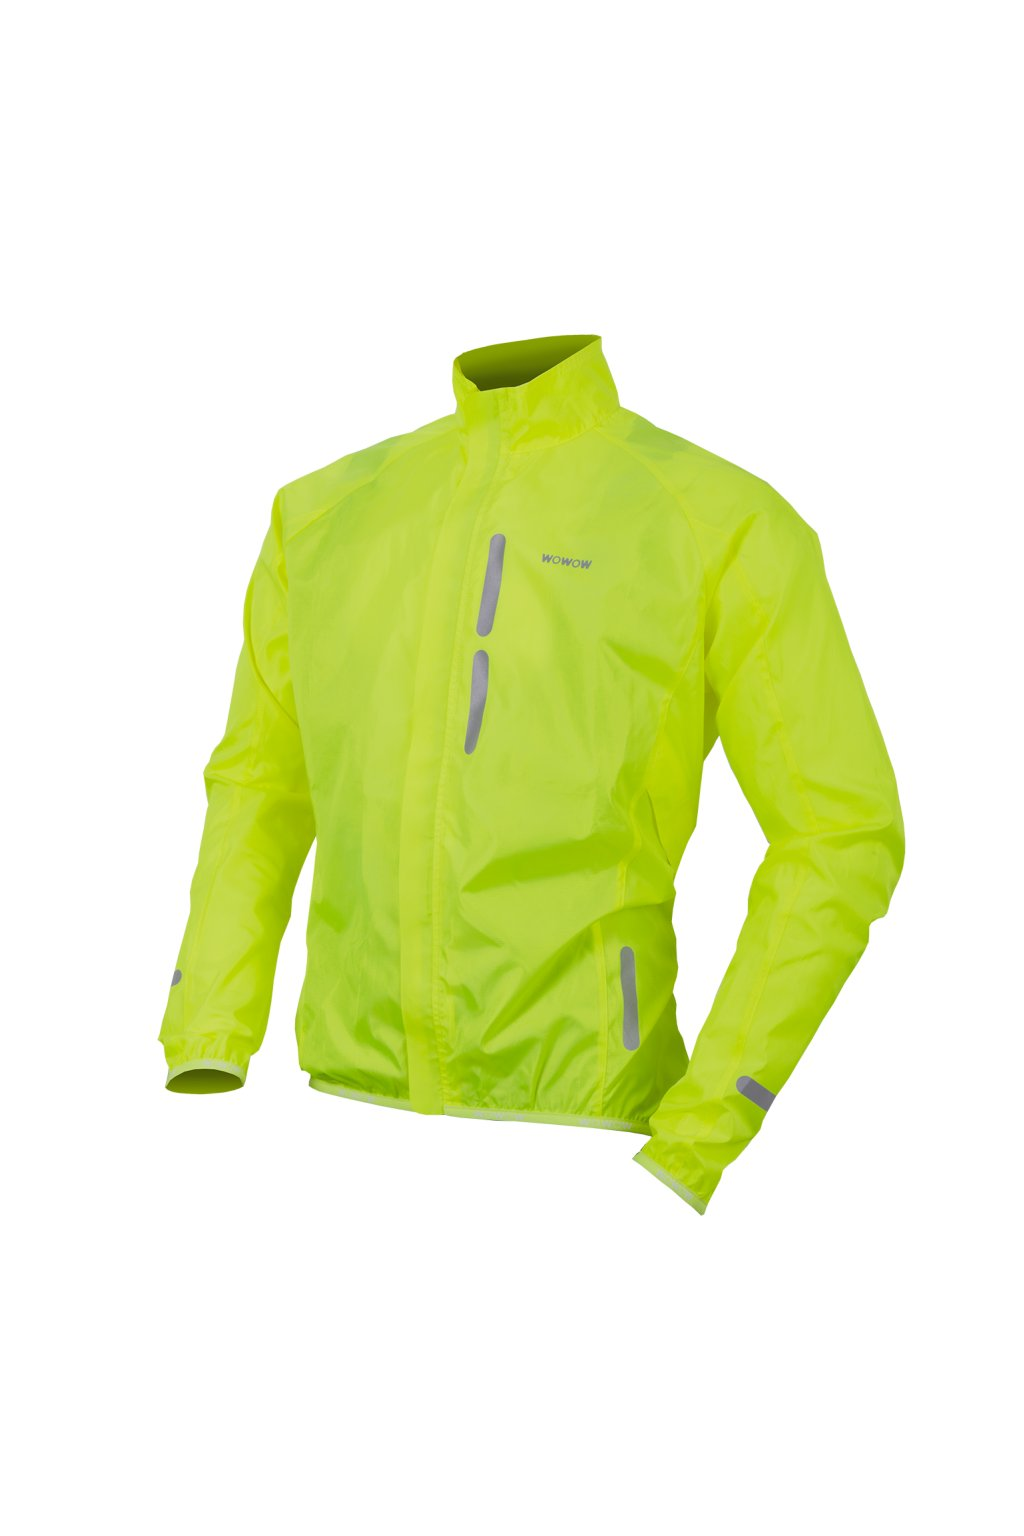 WIND JACKET YELLOW FRONT BIG